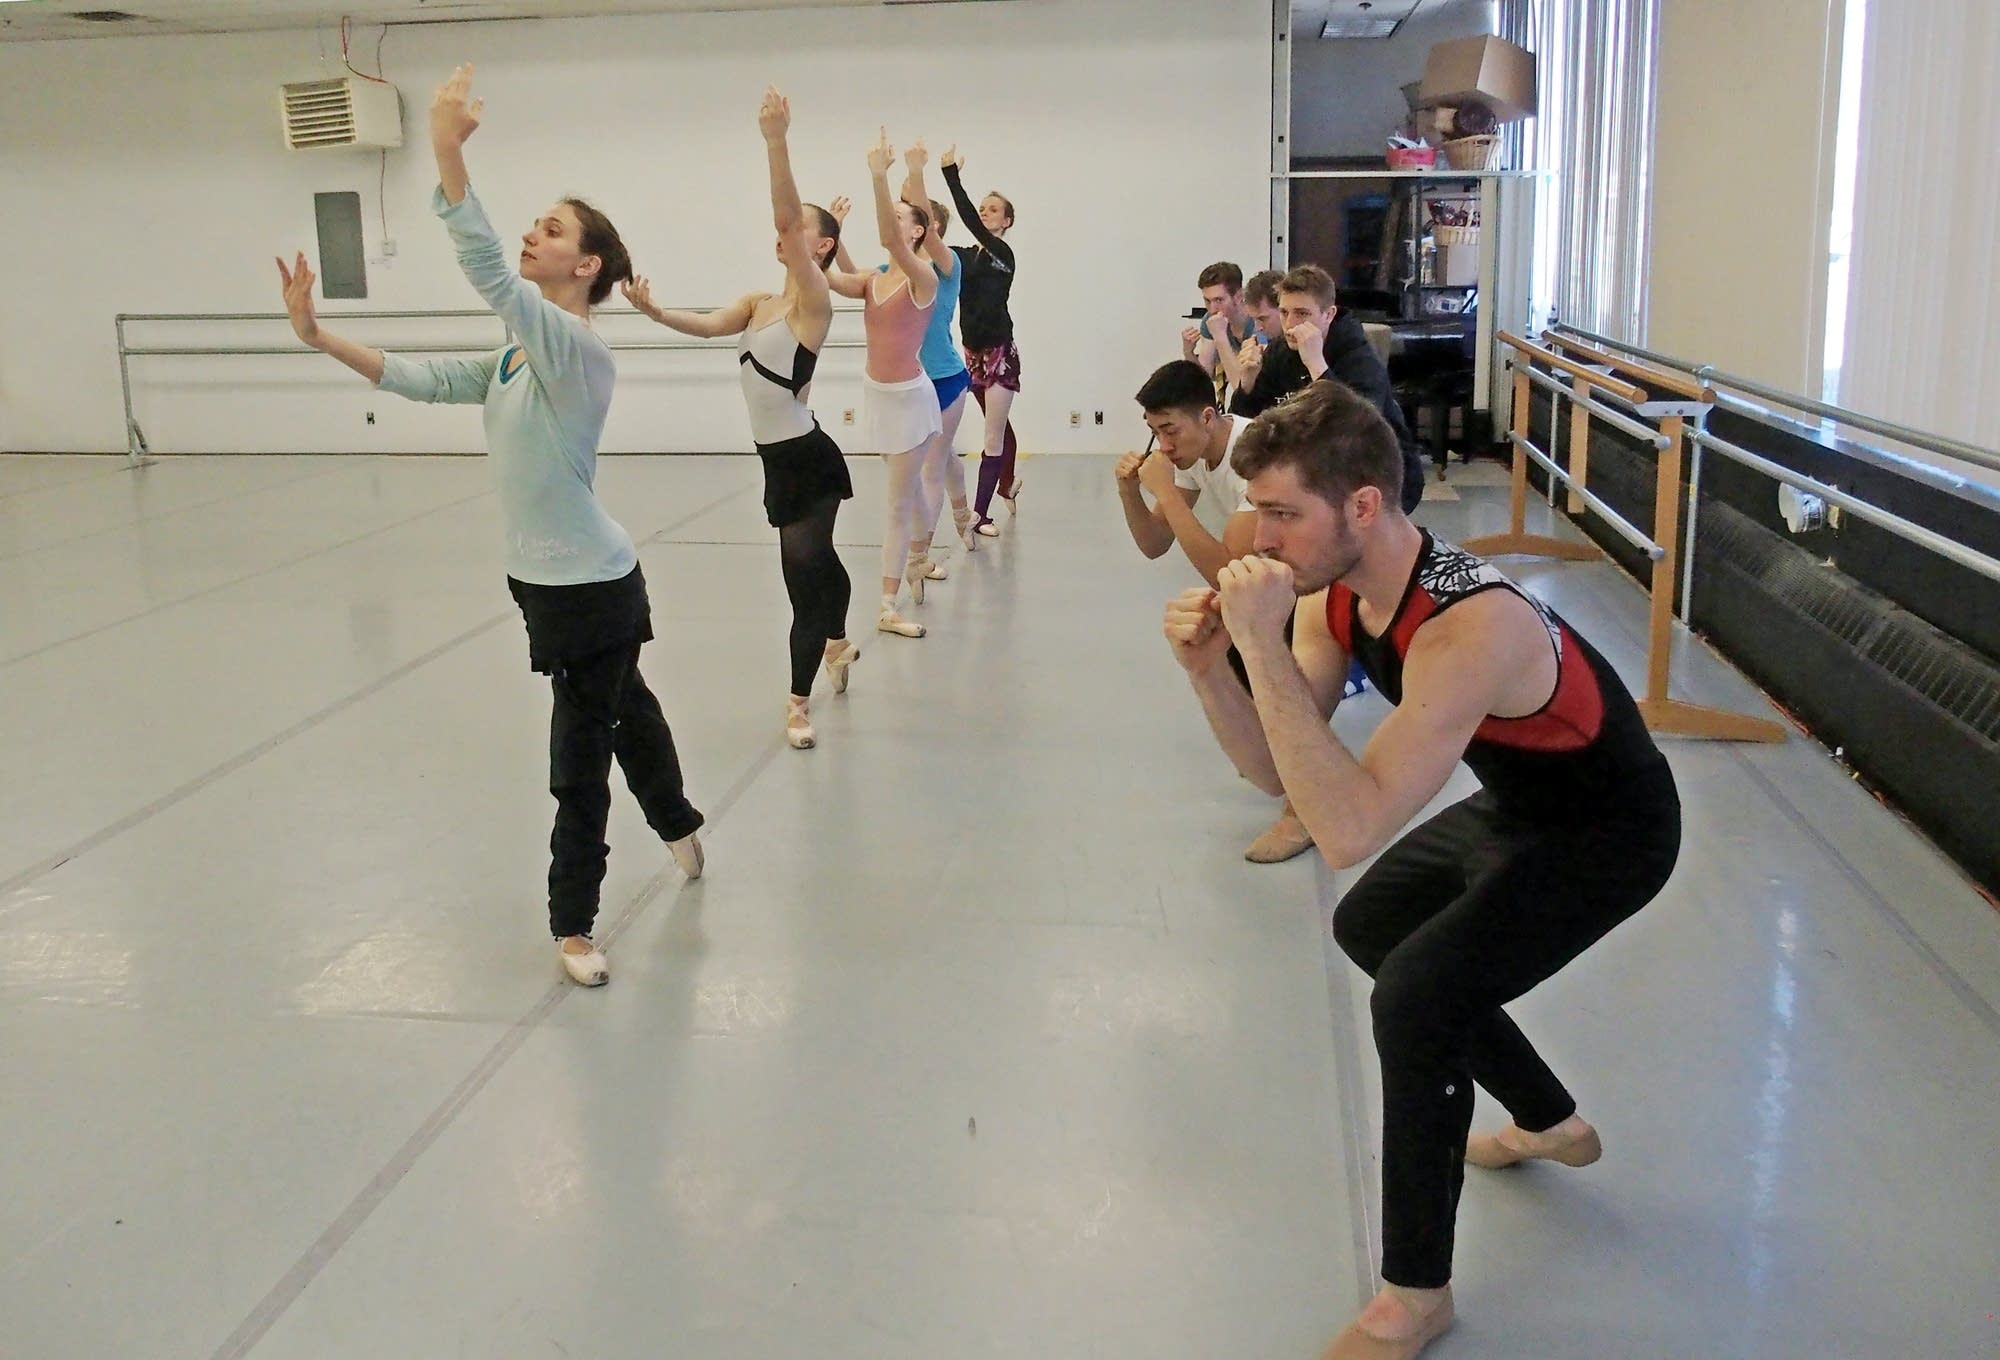 Members of the St Paul Ballet rehearse 'To Billy' in their studio.